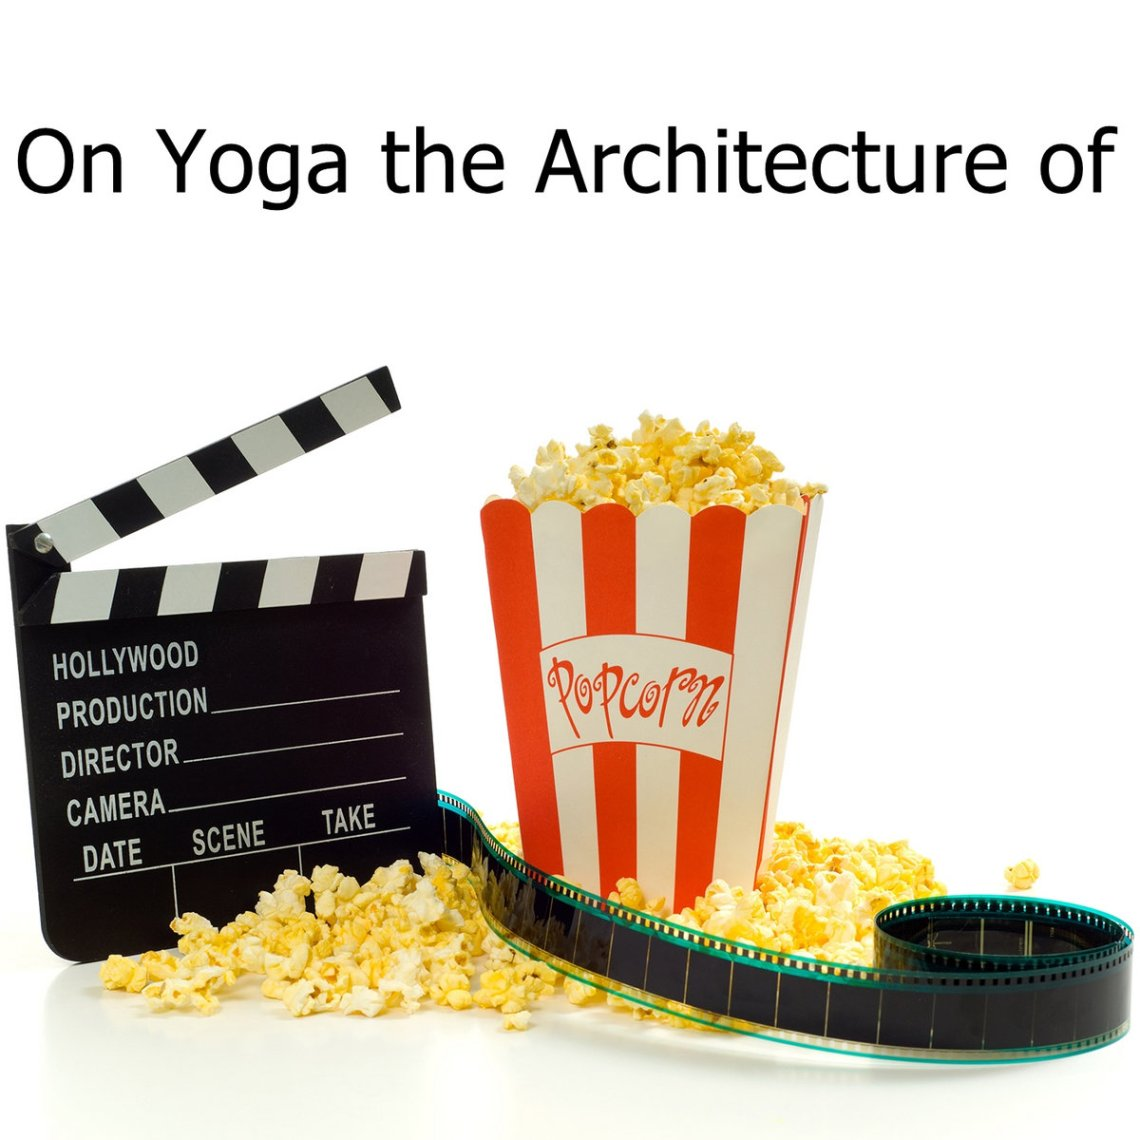 720p Hq Cinema On Yoga The Architecture Of Peace Streaming For Windows Diedreamhingrastlo